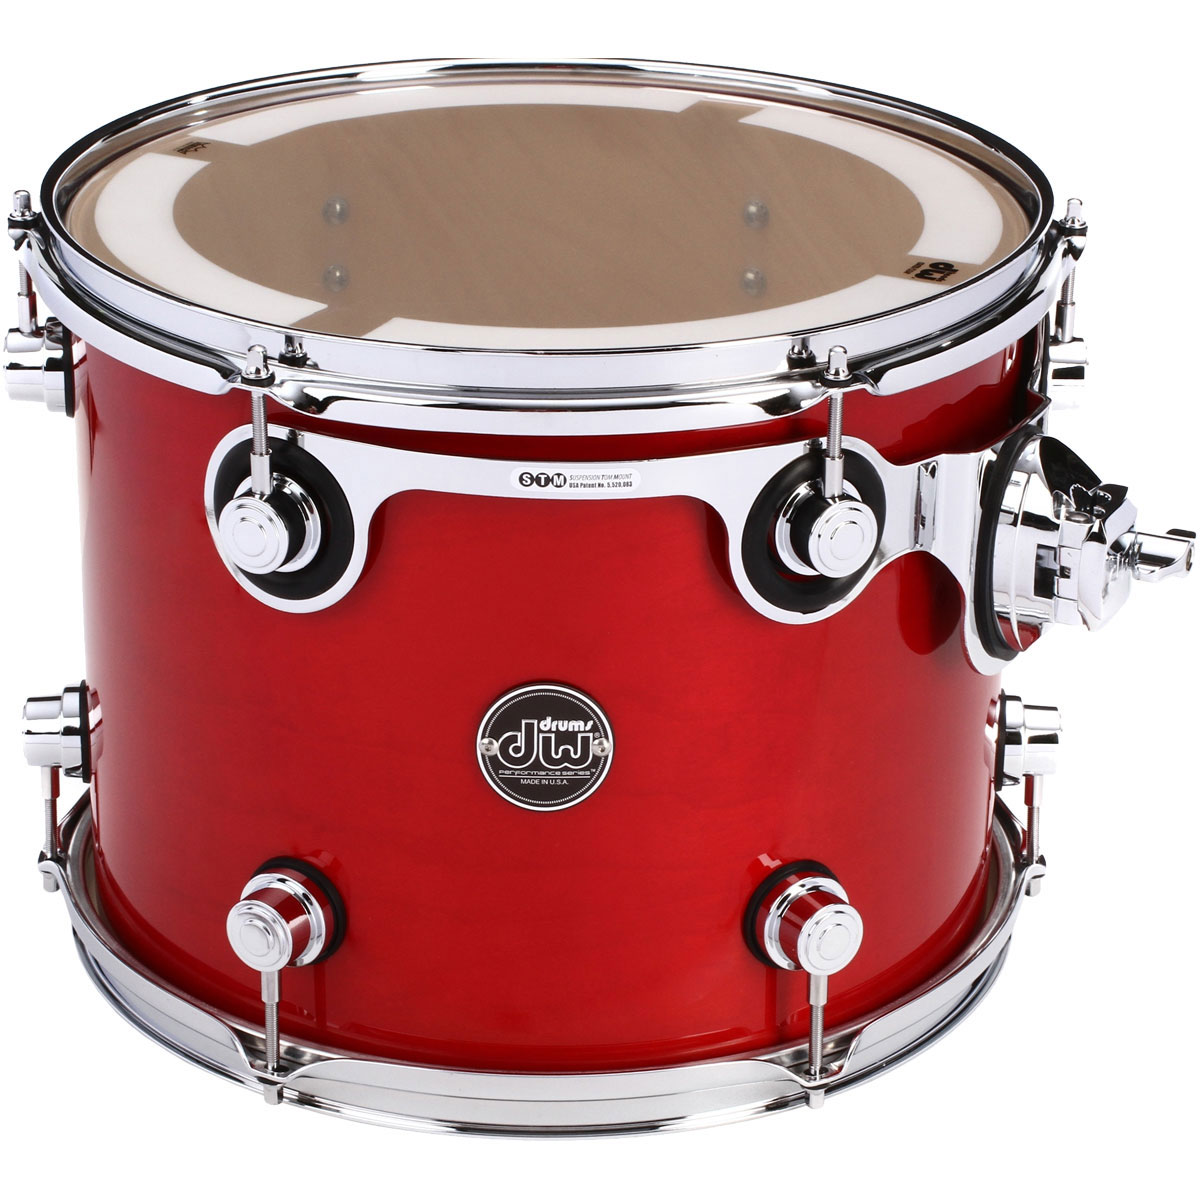 "DW 10"" (Deep) x 13"" (Diameter) Performance Series Tom in Specialty Lacquer Finish"